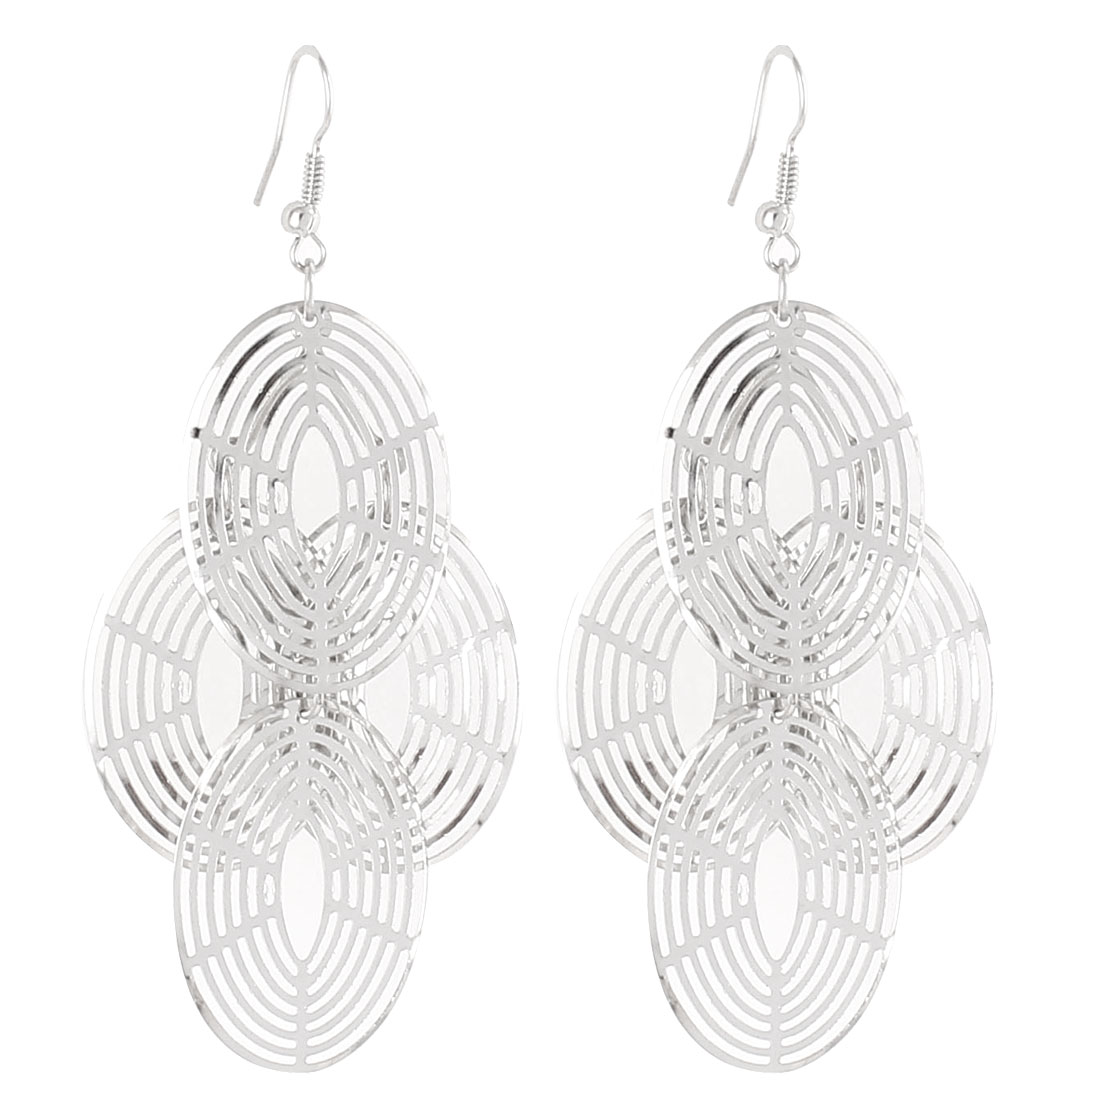 Hollow Oval Shape Metal Dangle Chandelier Fish Hook Earrings Silver Tone Pair